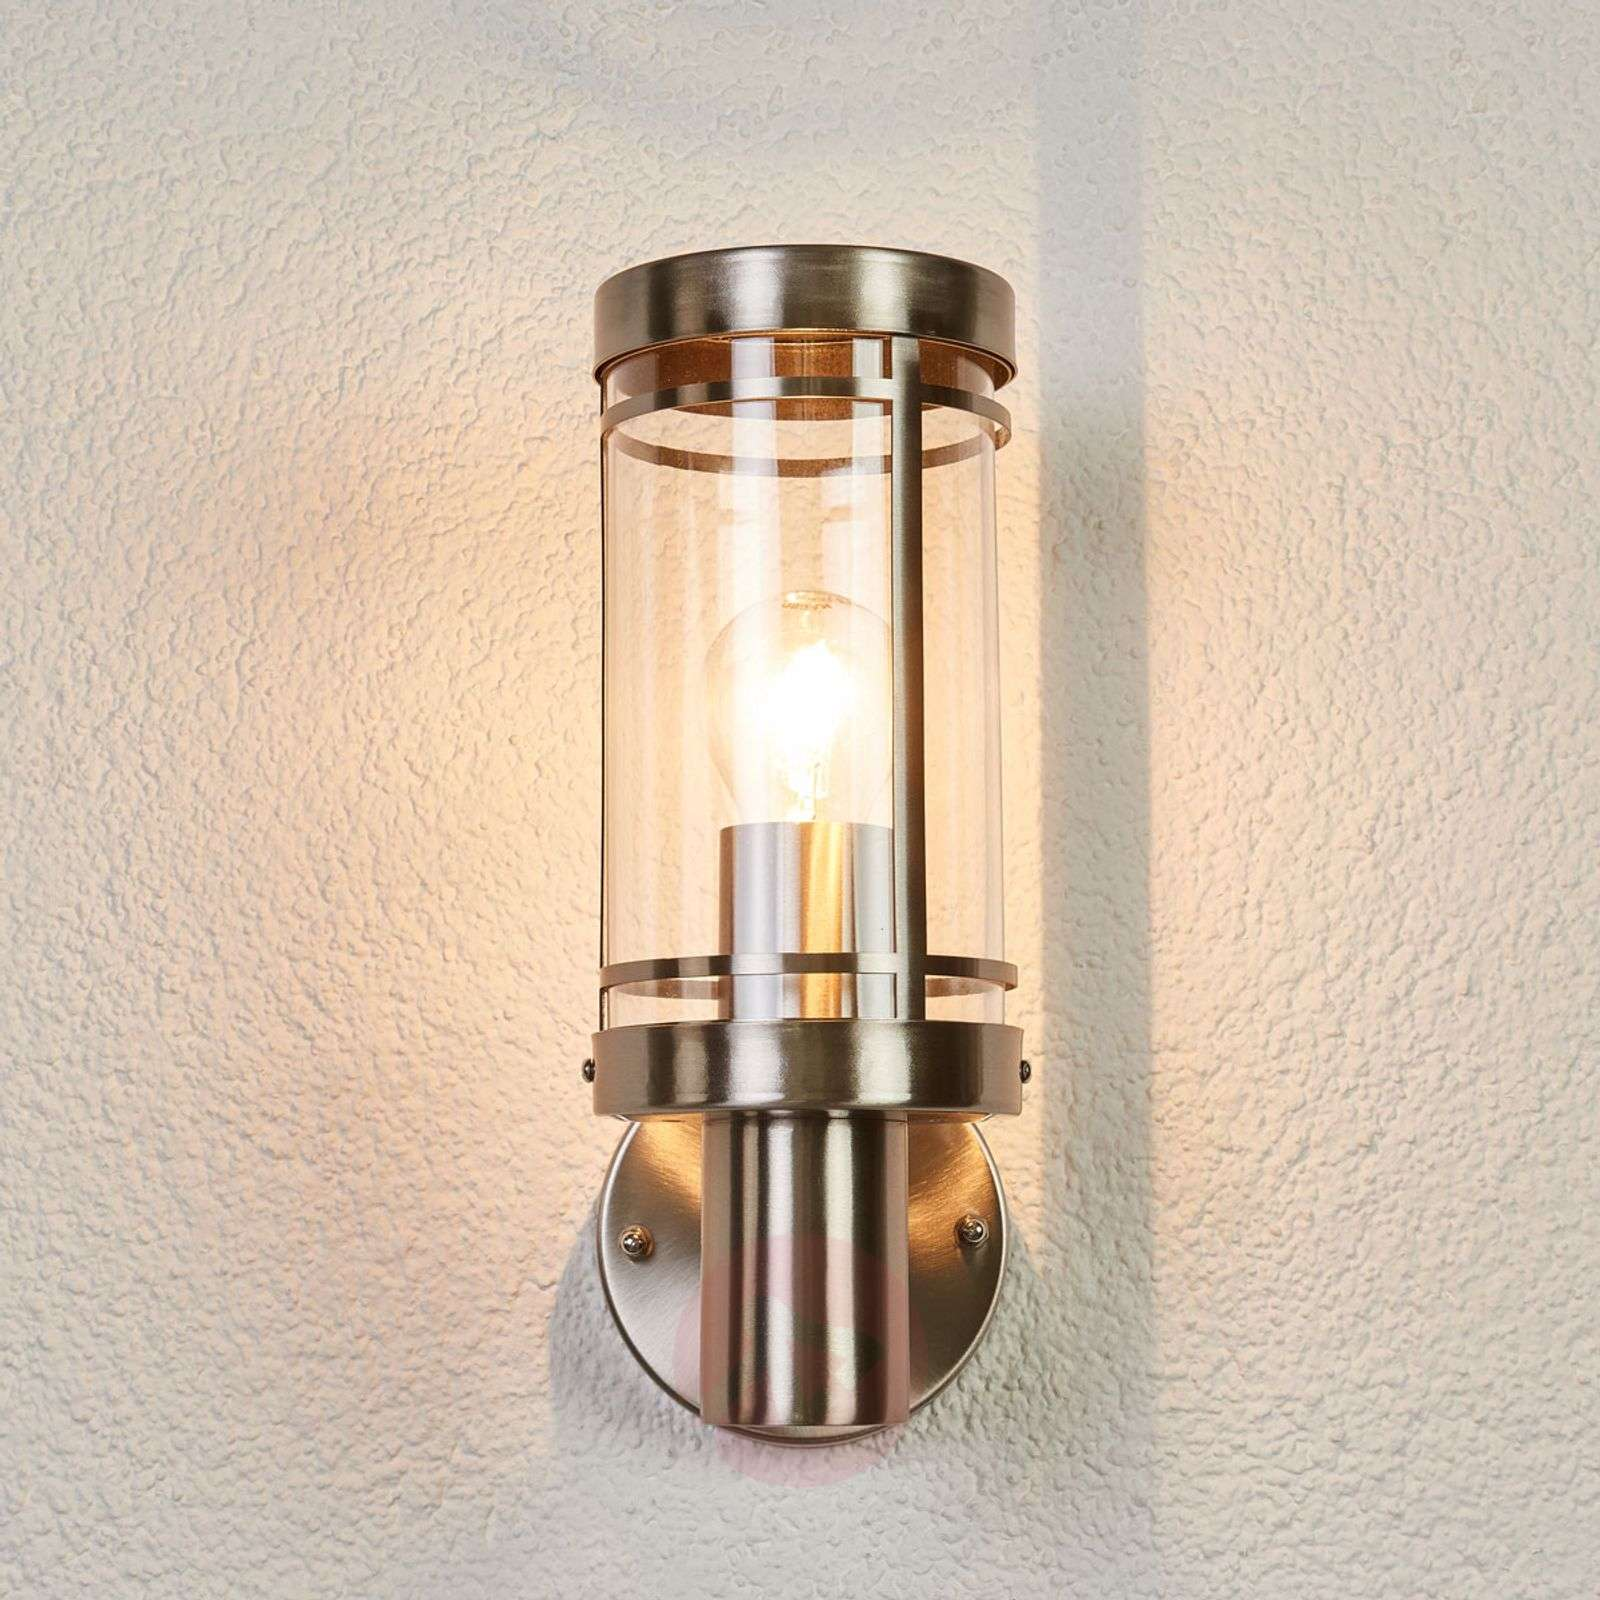 Stainless steel outdoor wall light Djori-9977032-02